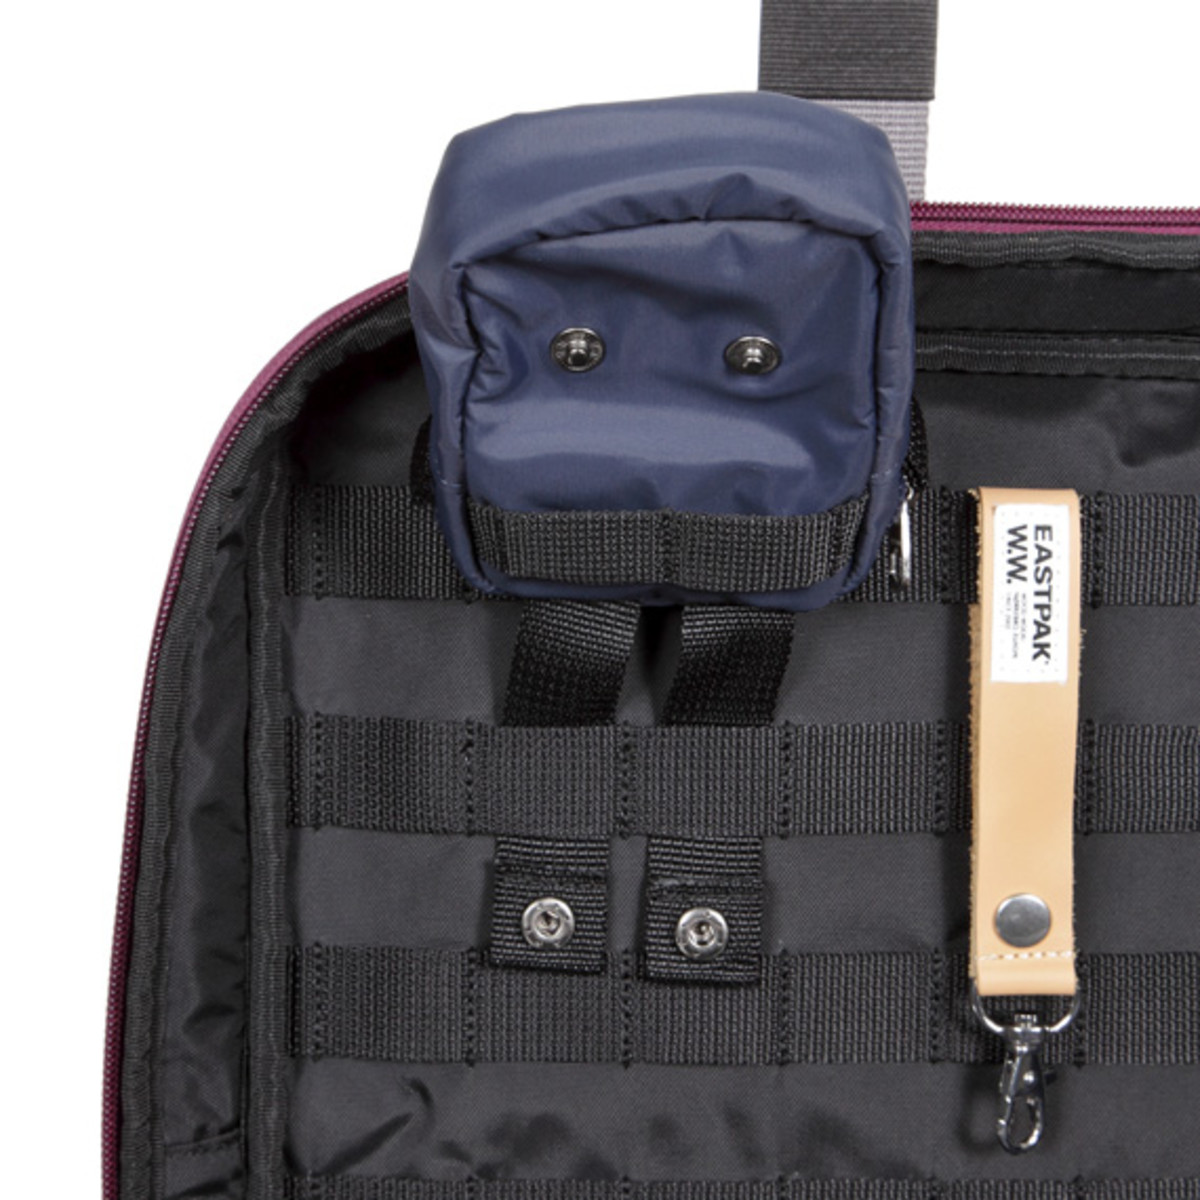 wood-wood-for-eastpak-modulation-accessories-bags-collection-spring-summer-2013-ek932-07